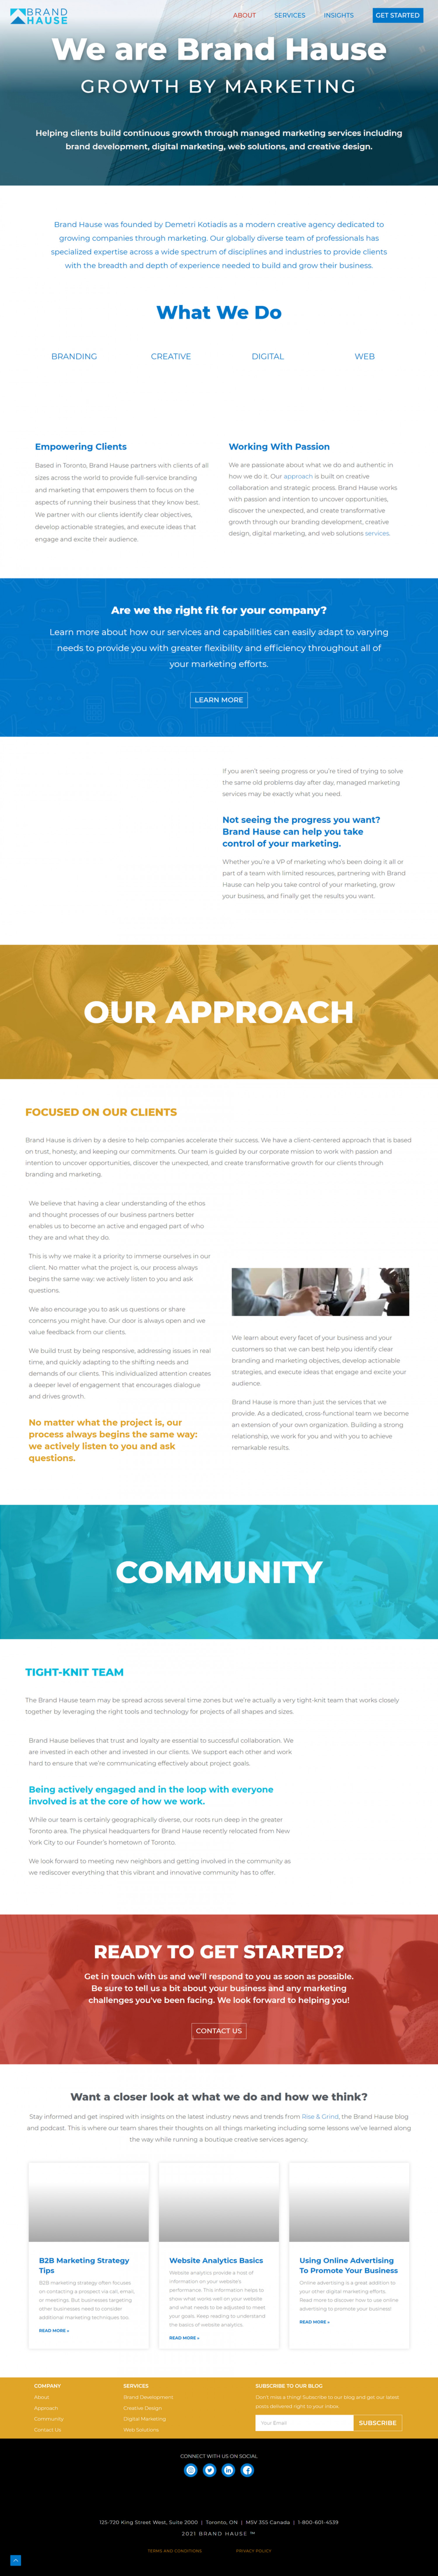 Marketing Agency Infographic